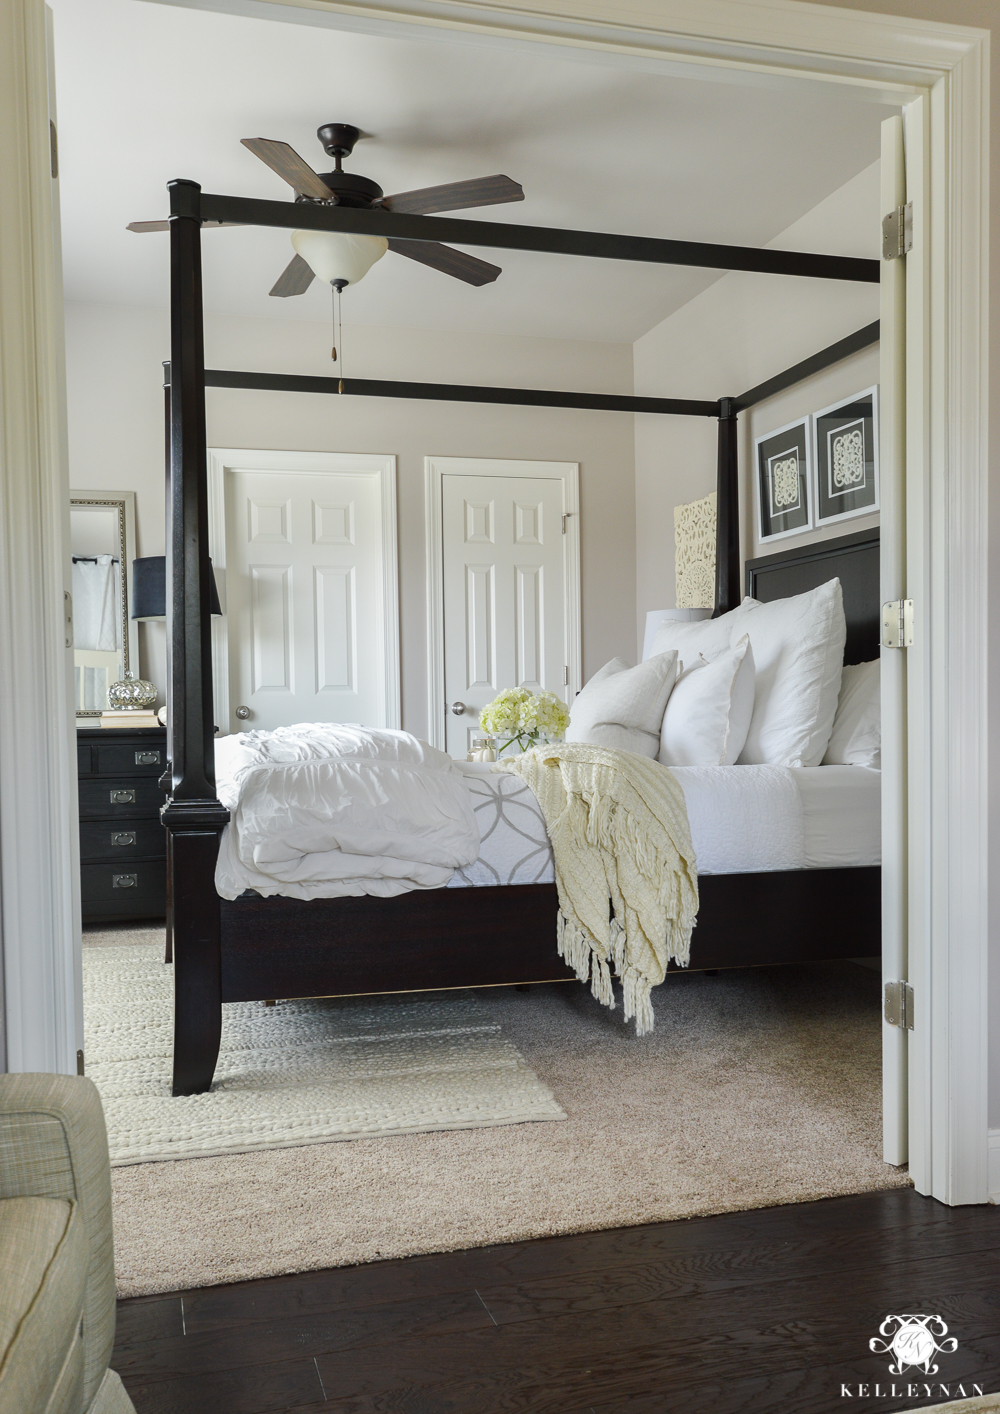 Why Rugs Should Be Layered On Carpet- guest bedroom with canopy bed